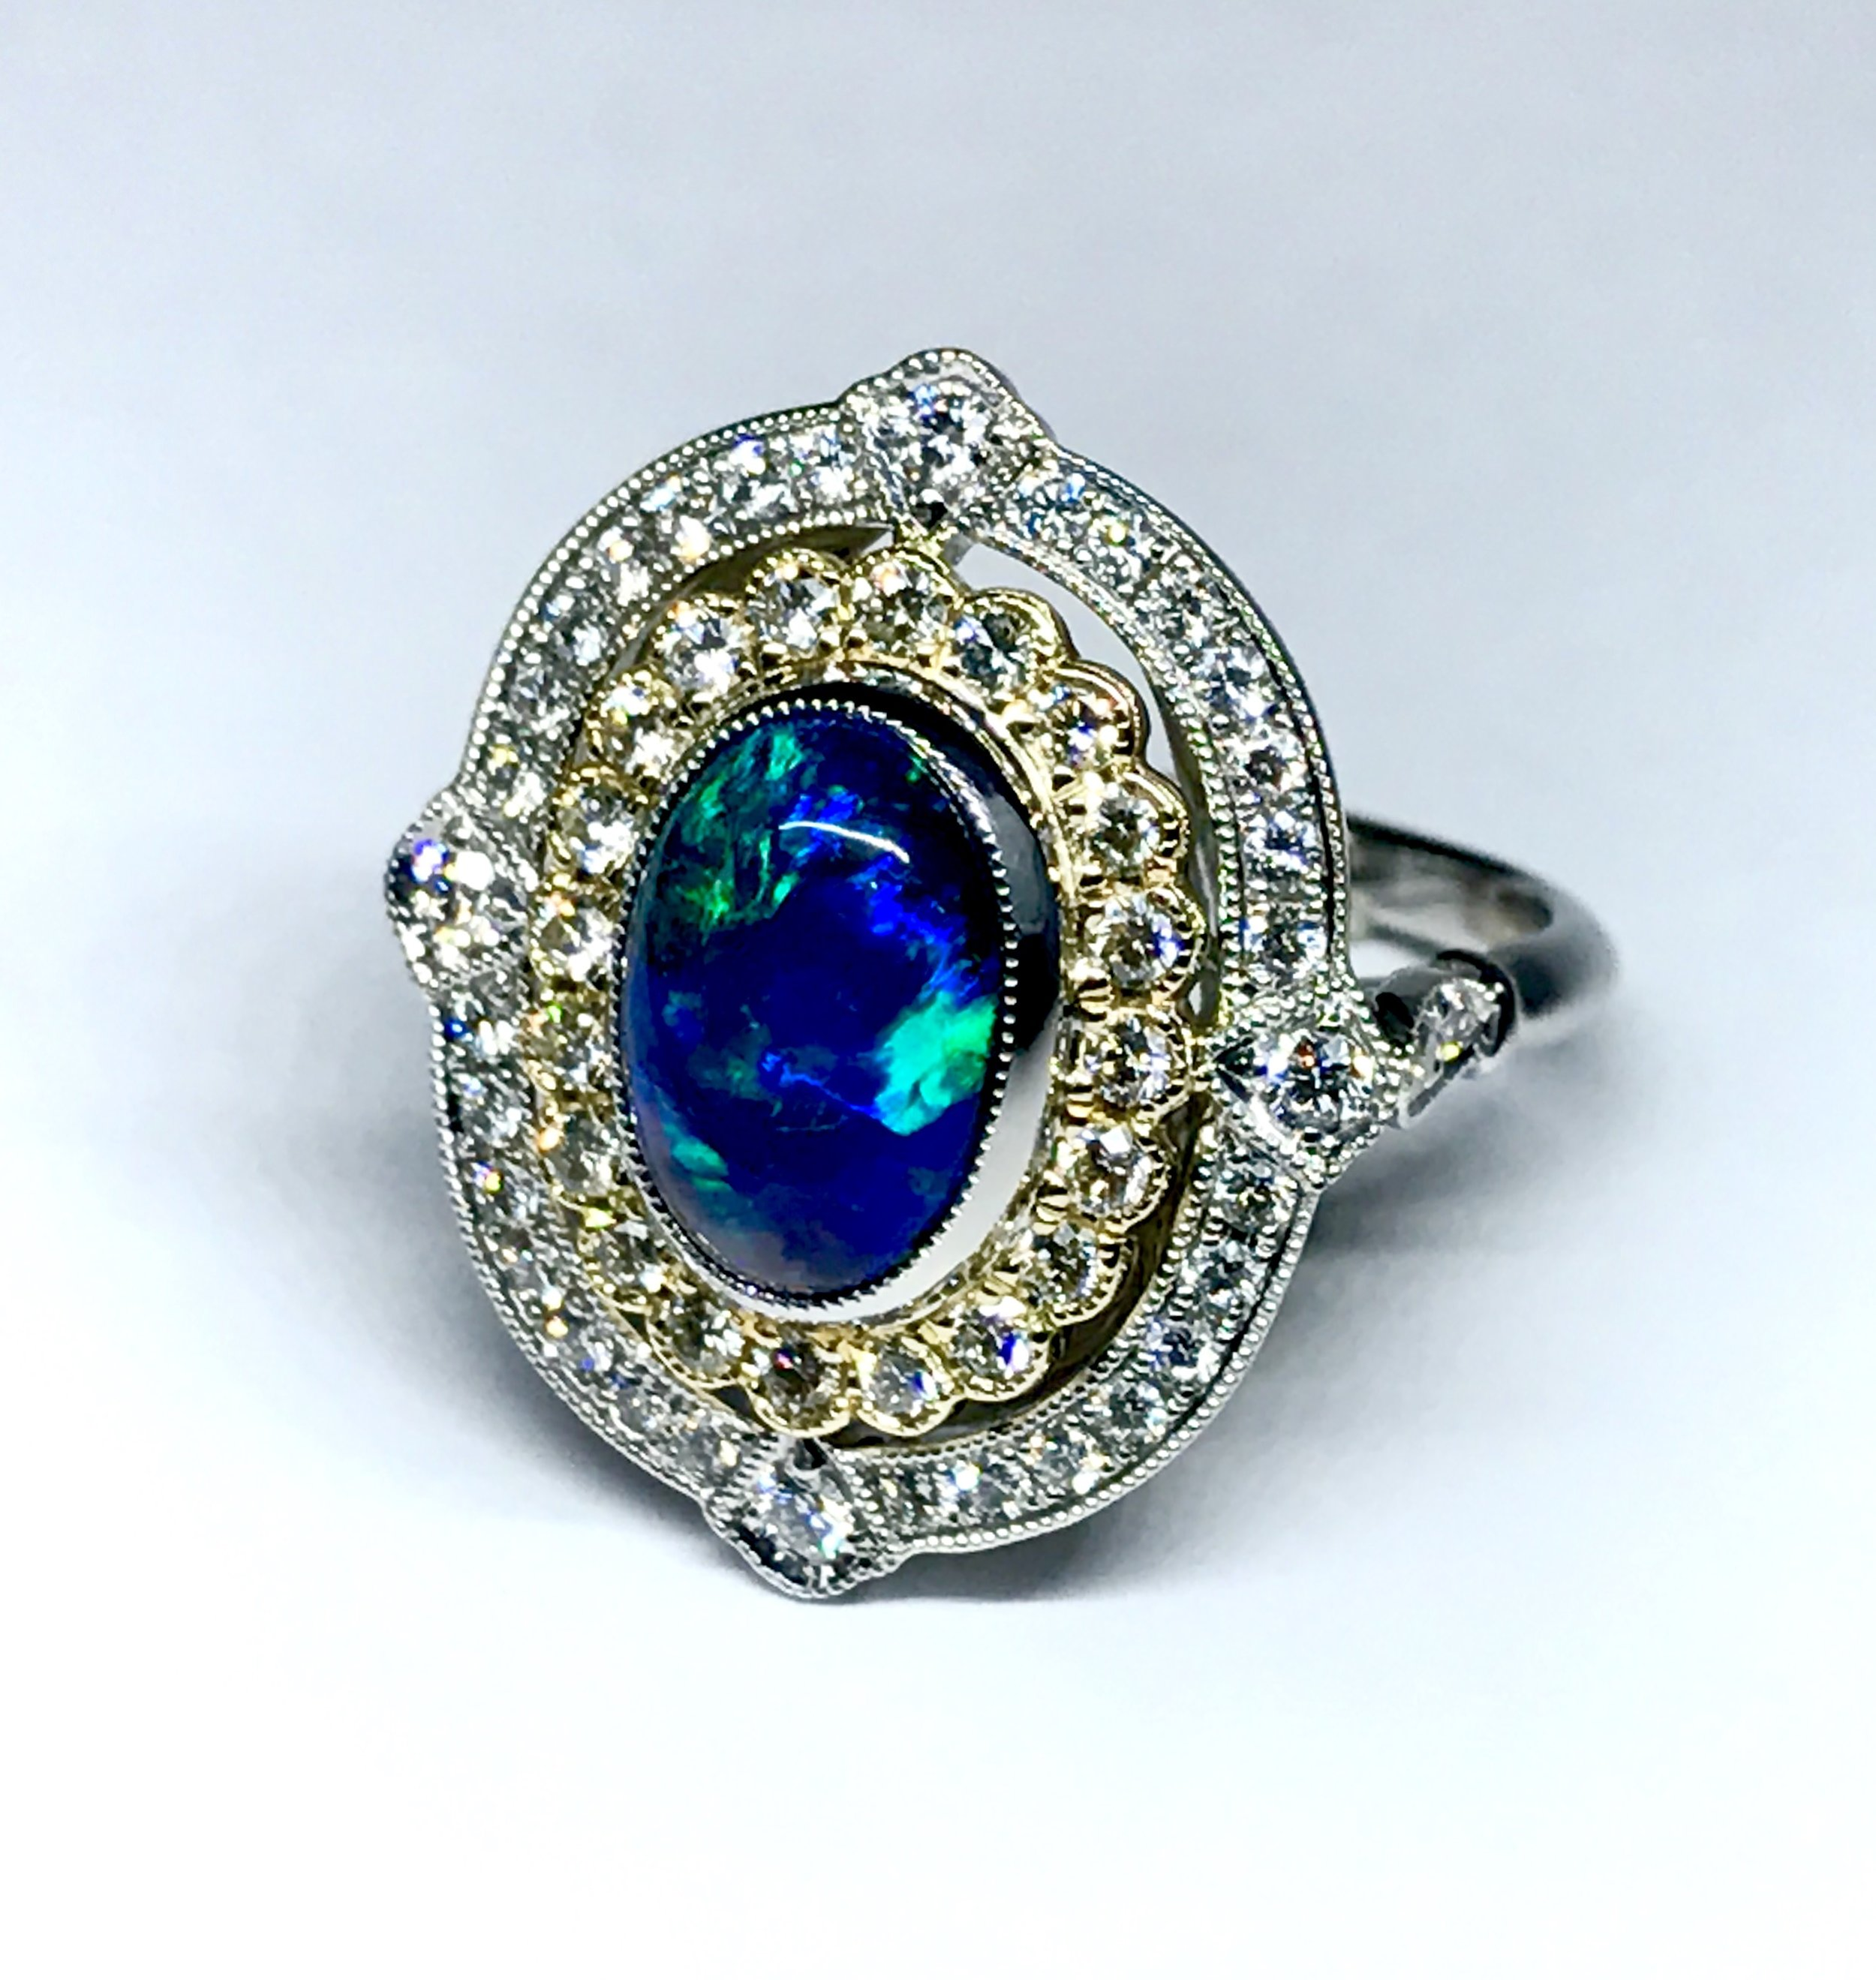 Copy of Black opal and diamond Edwardian style oval cluster ring. Made in Chichester, England.